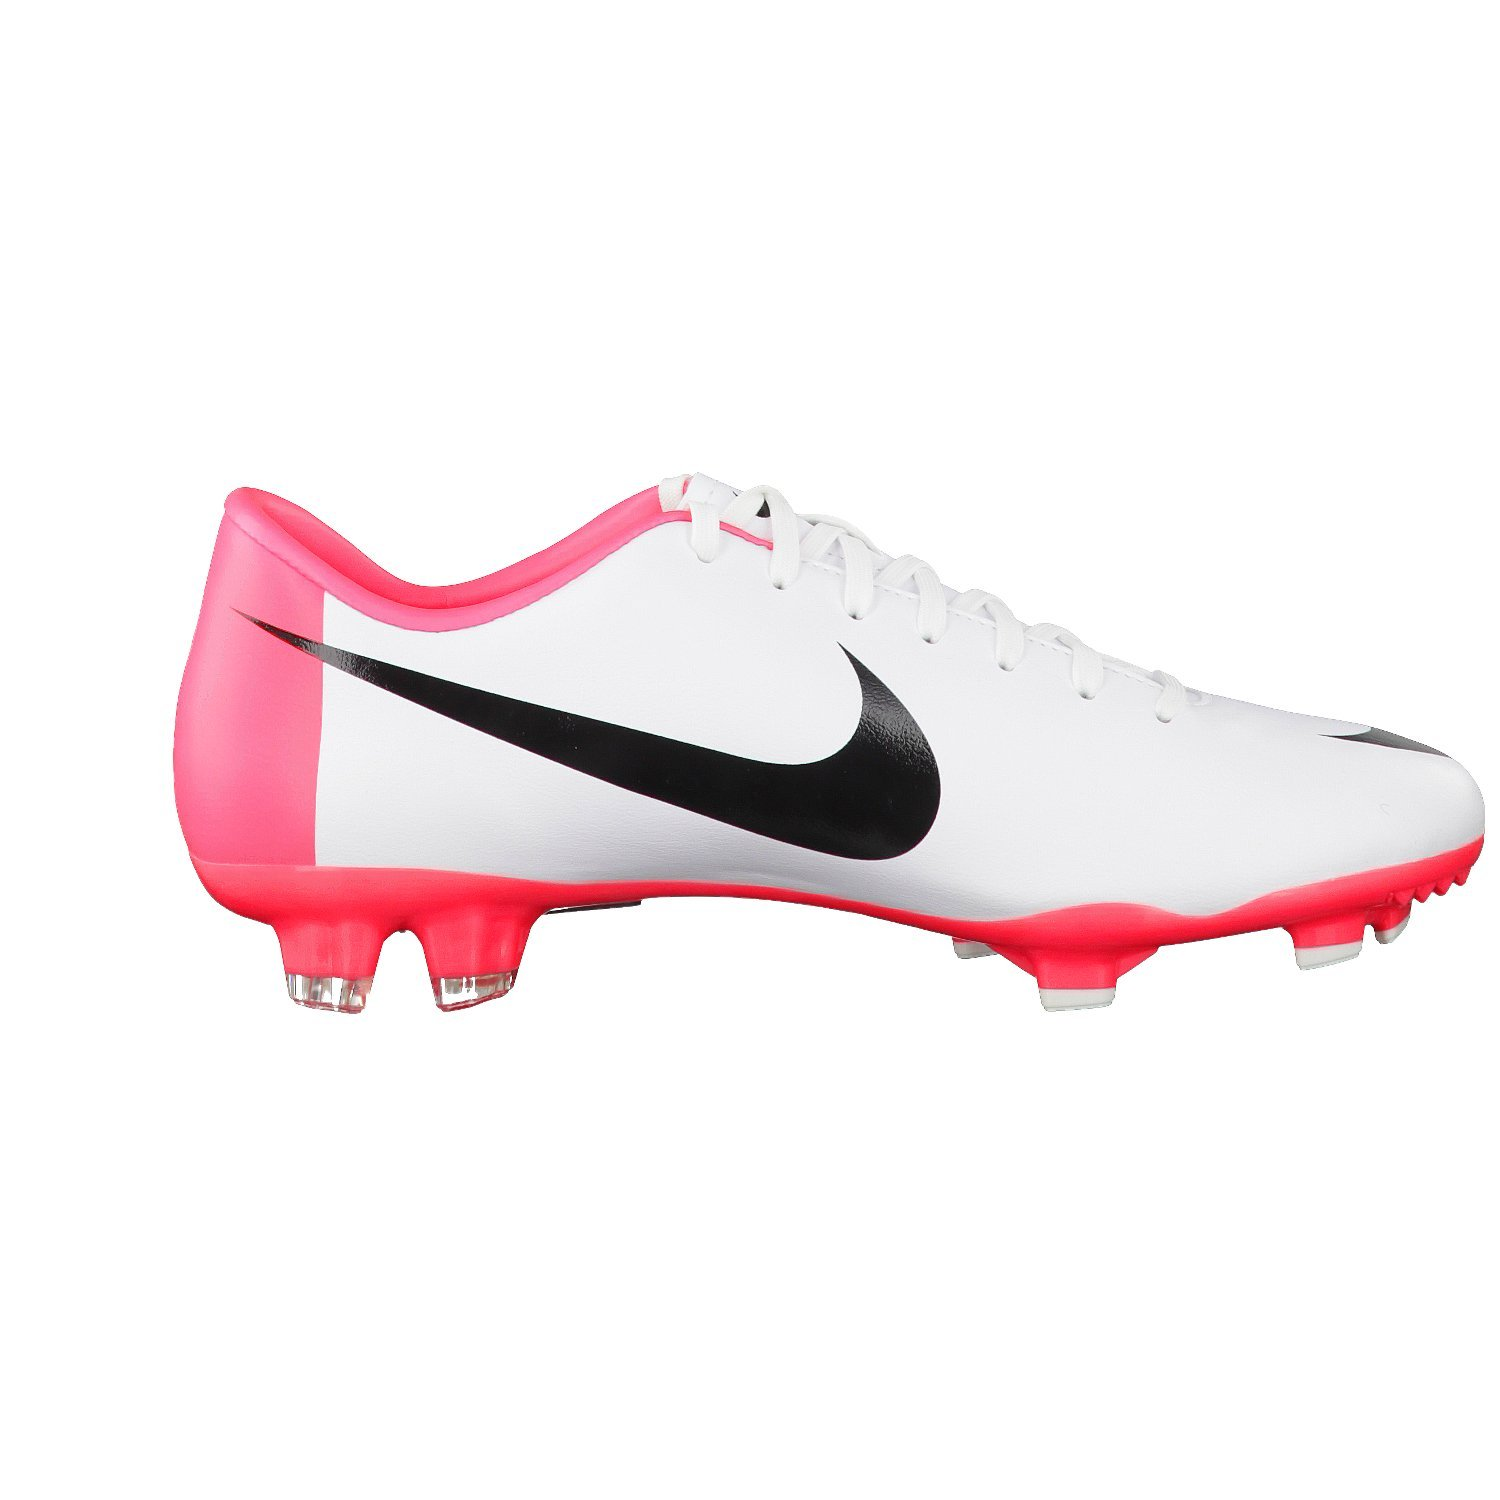 Nike Mercurial Victory Victory Victory III Fester Boden Fußballstiefel 22ad49